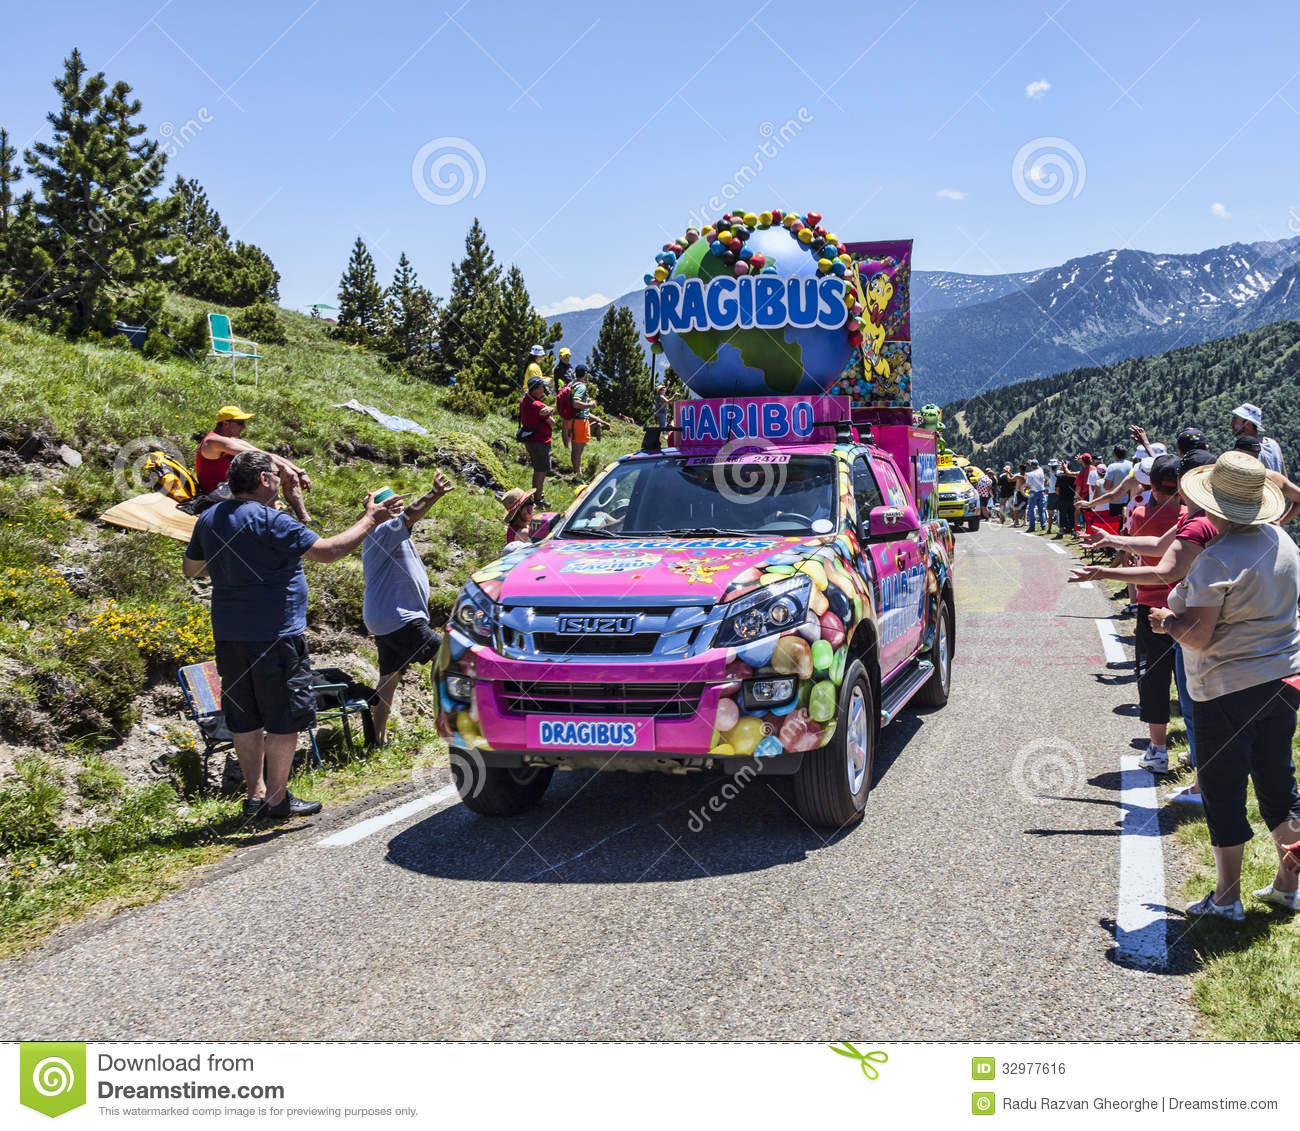 haribo car in pyrenees mountains editorial photo image 32977616. Black Bedroom Furniture Sets. Home Design Ideas